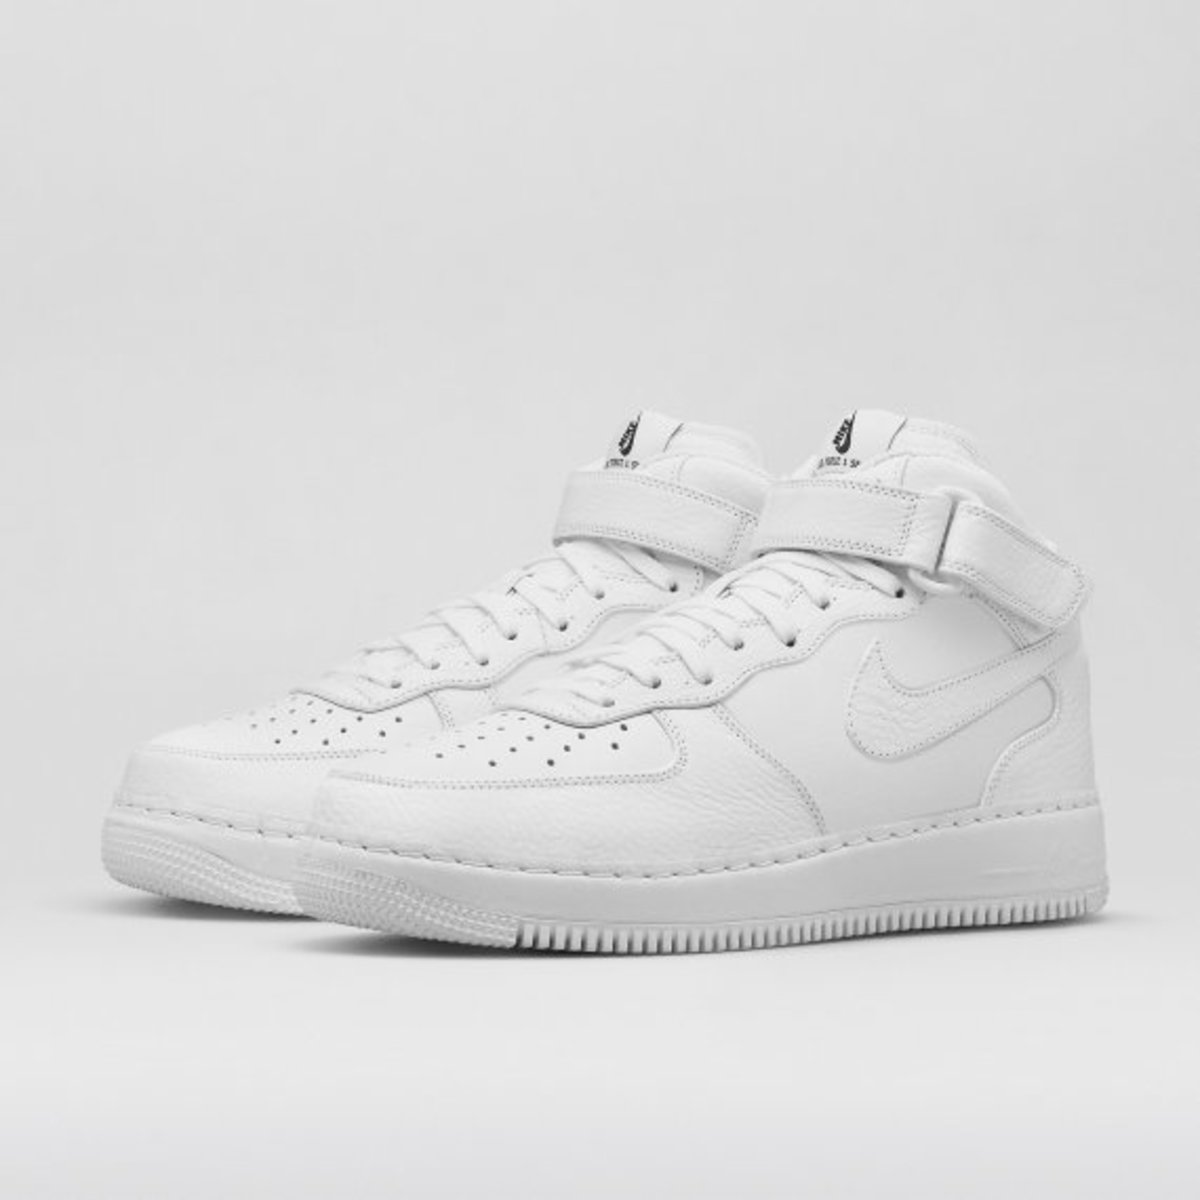 nike-air-force-1-cmft-collection-for-nikelab-14